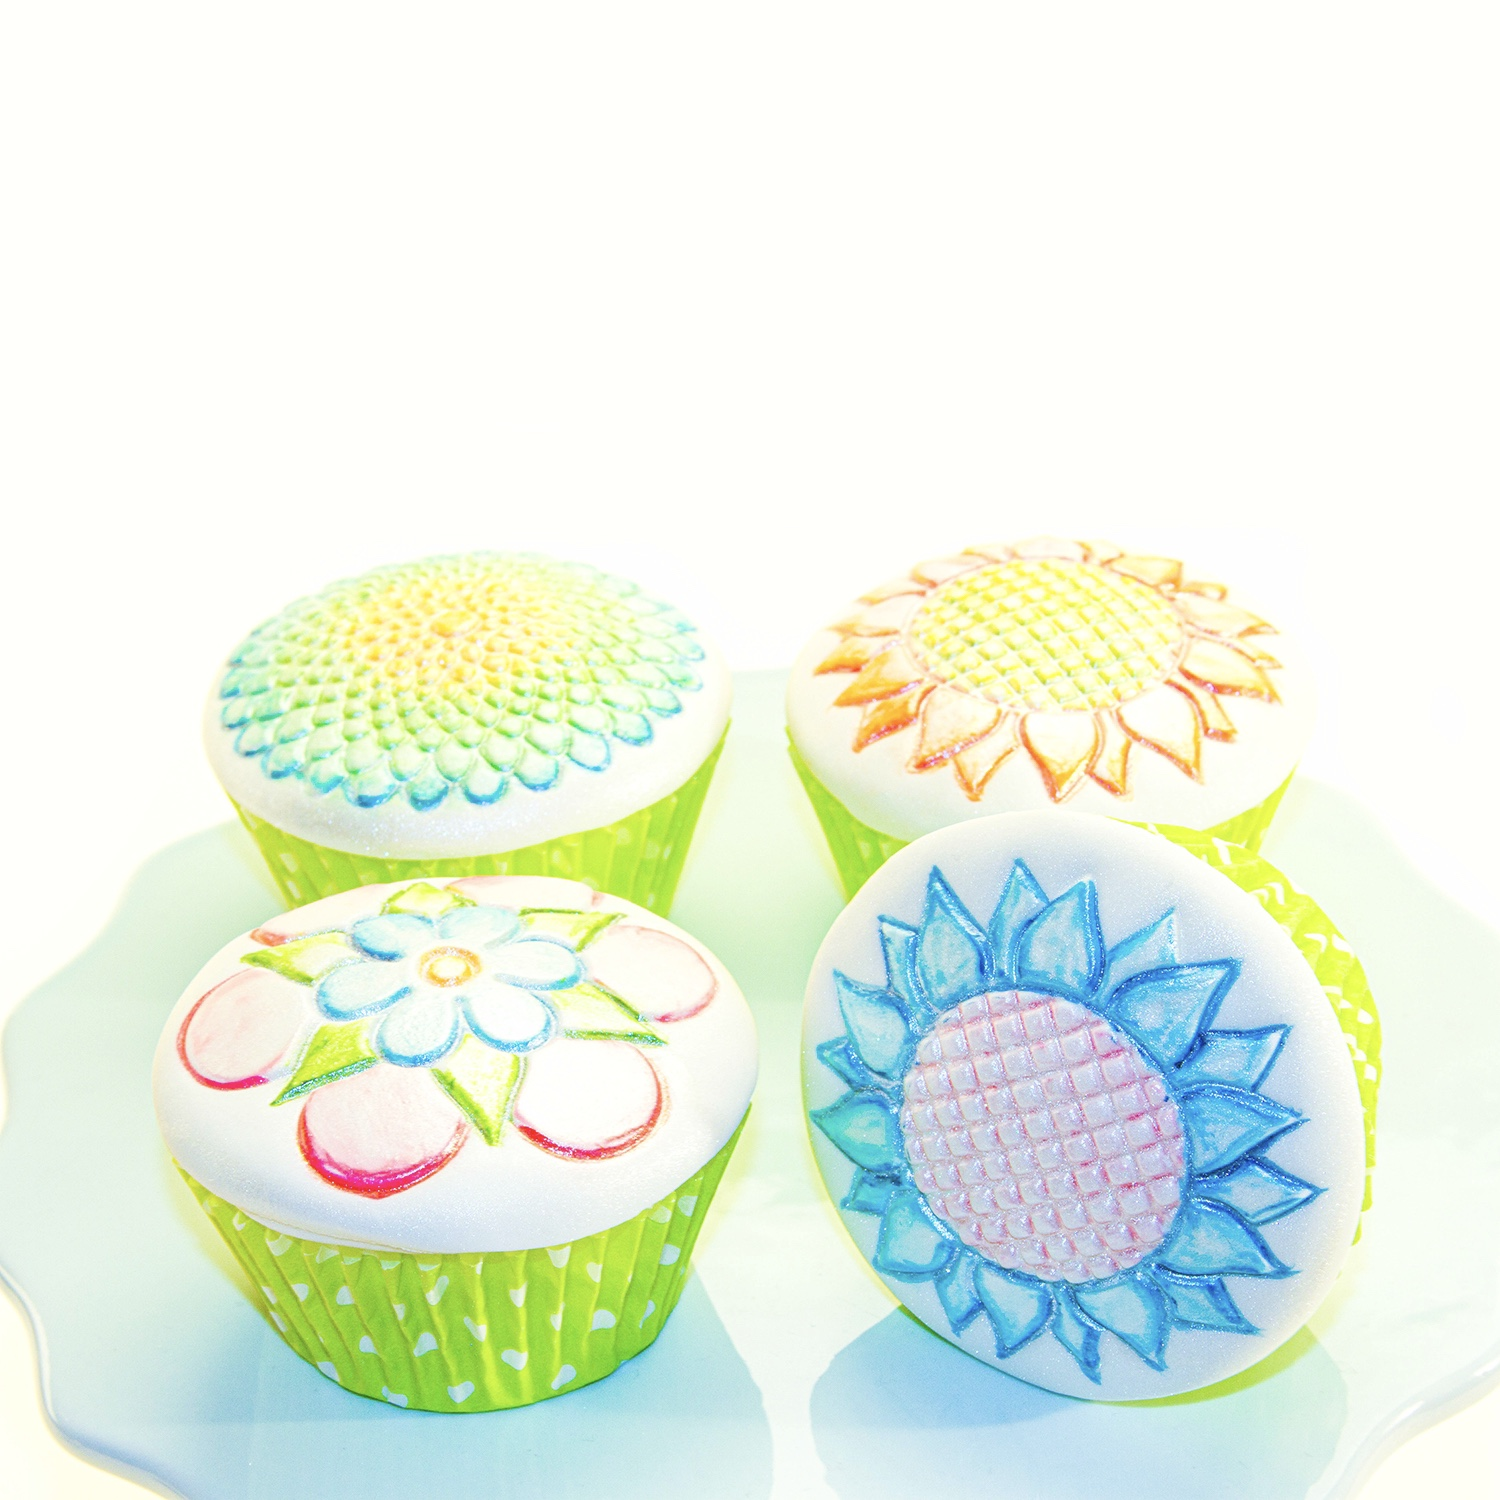 Sparkly Whimsy Bloom Cupcakes